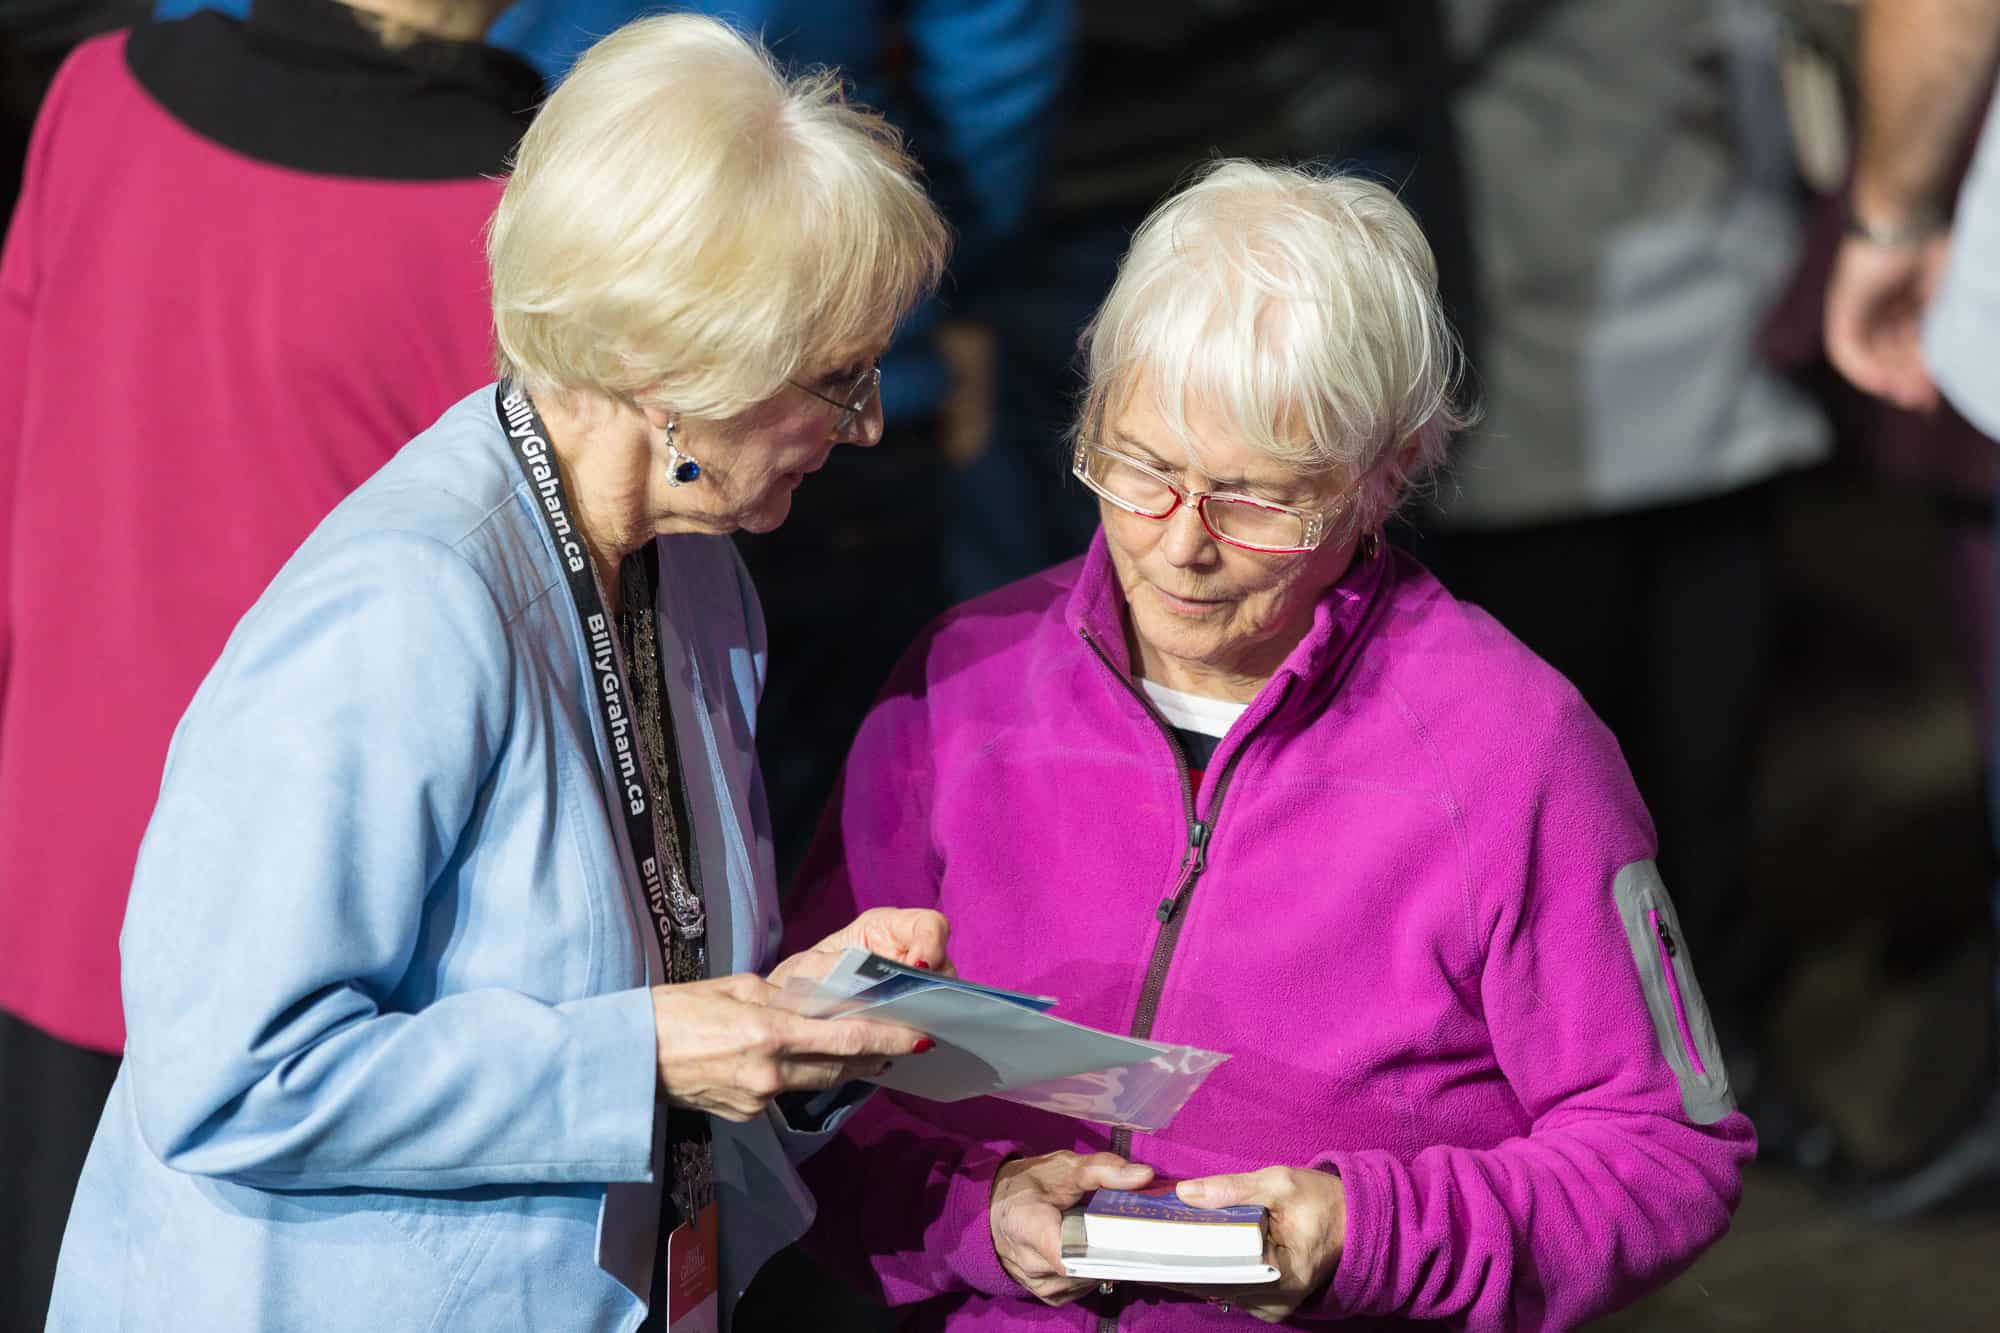 Prayer volunteers play a key role in gathering information from those who walk forward so they can be connected to a local church and receive other resources for growing their faith.